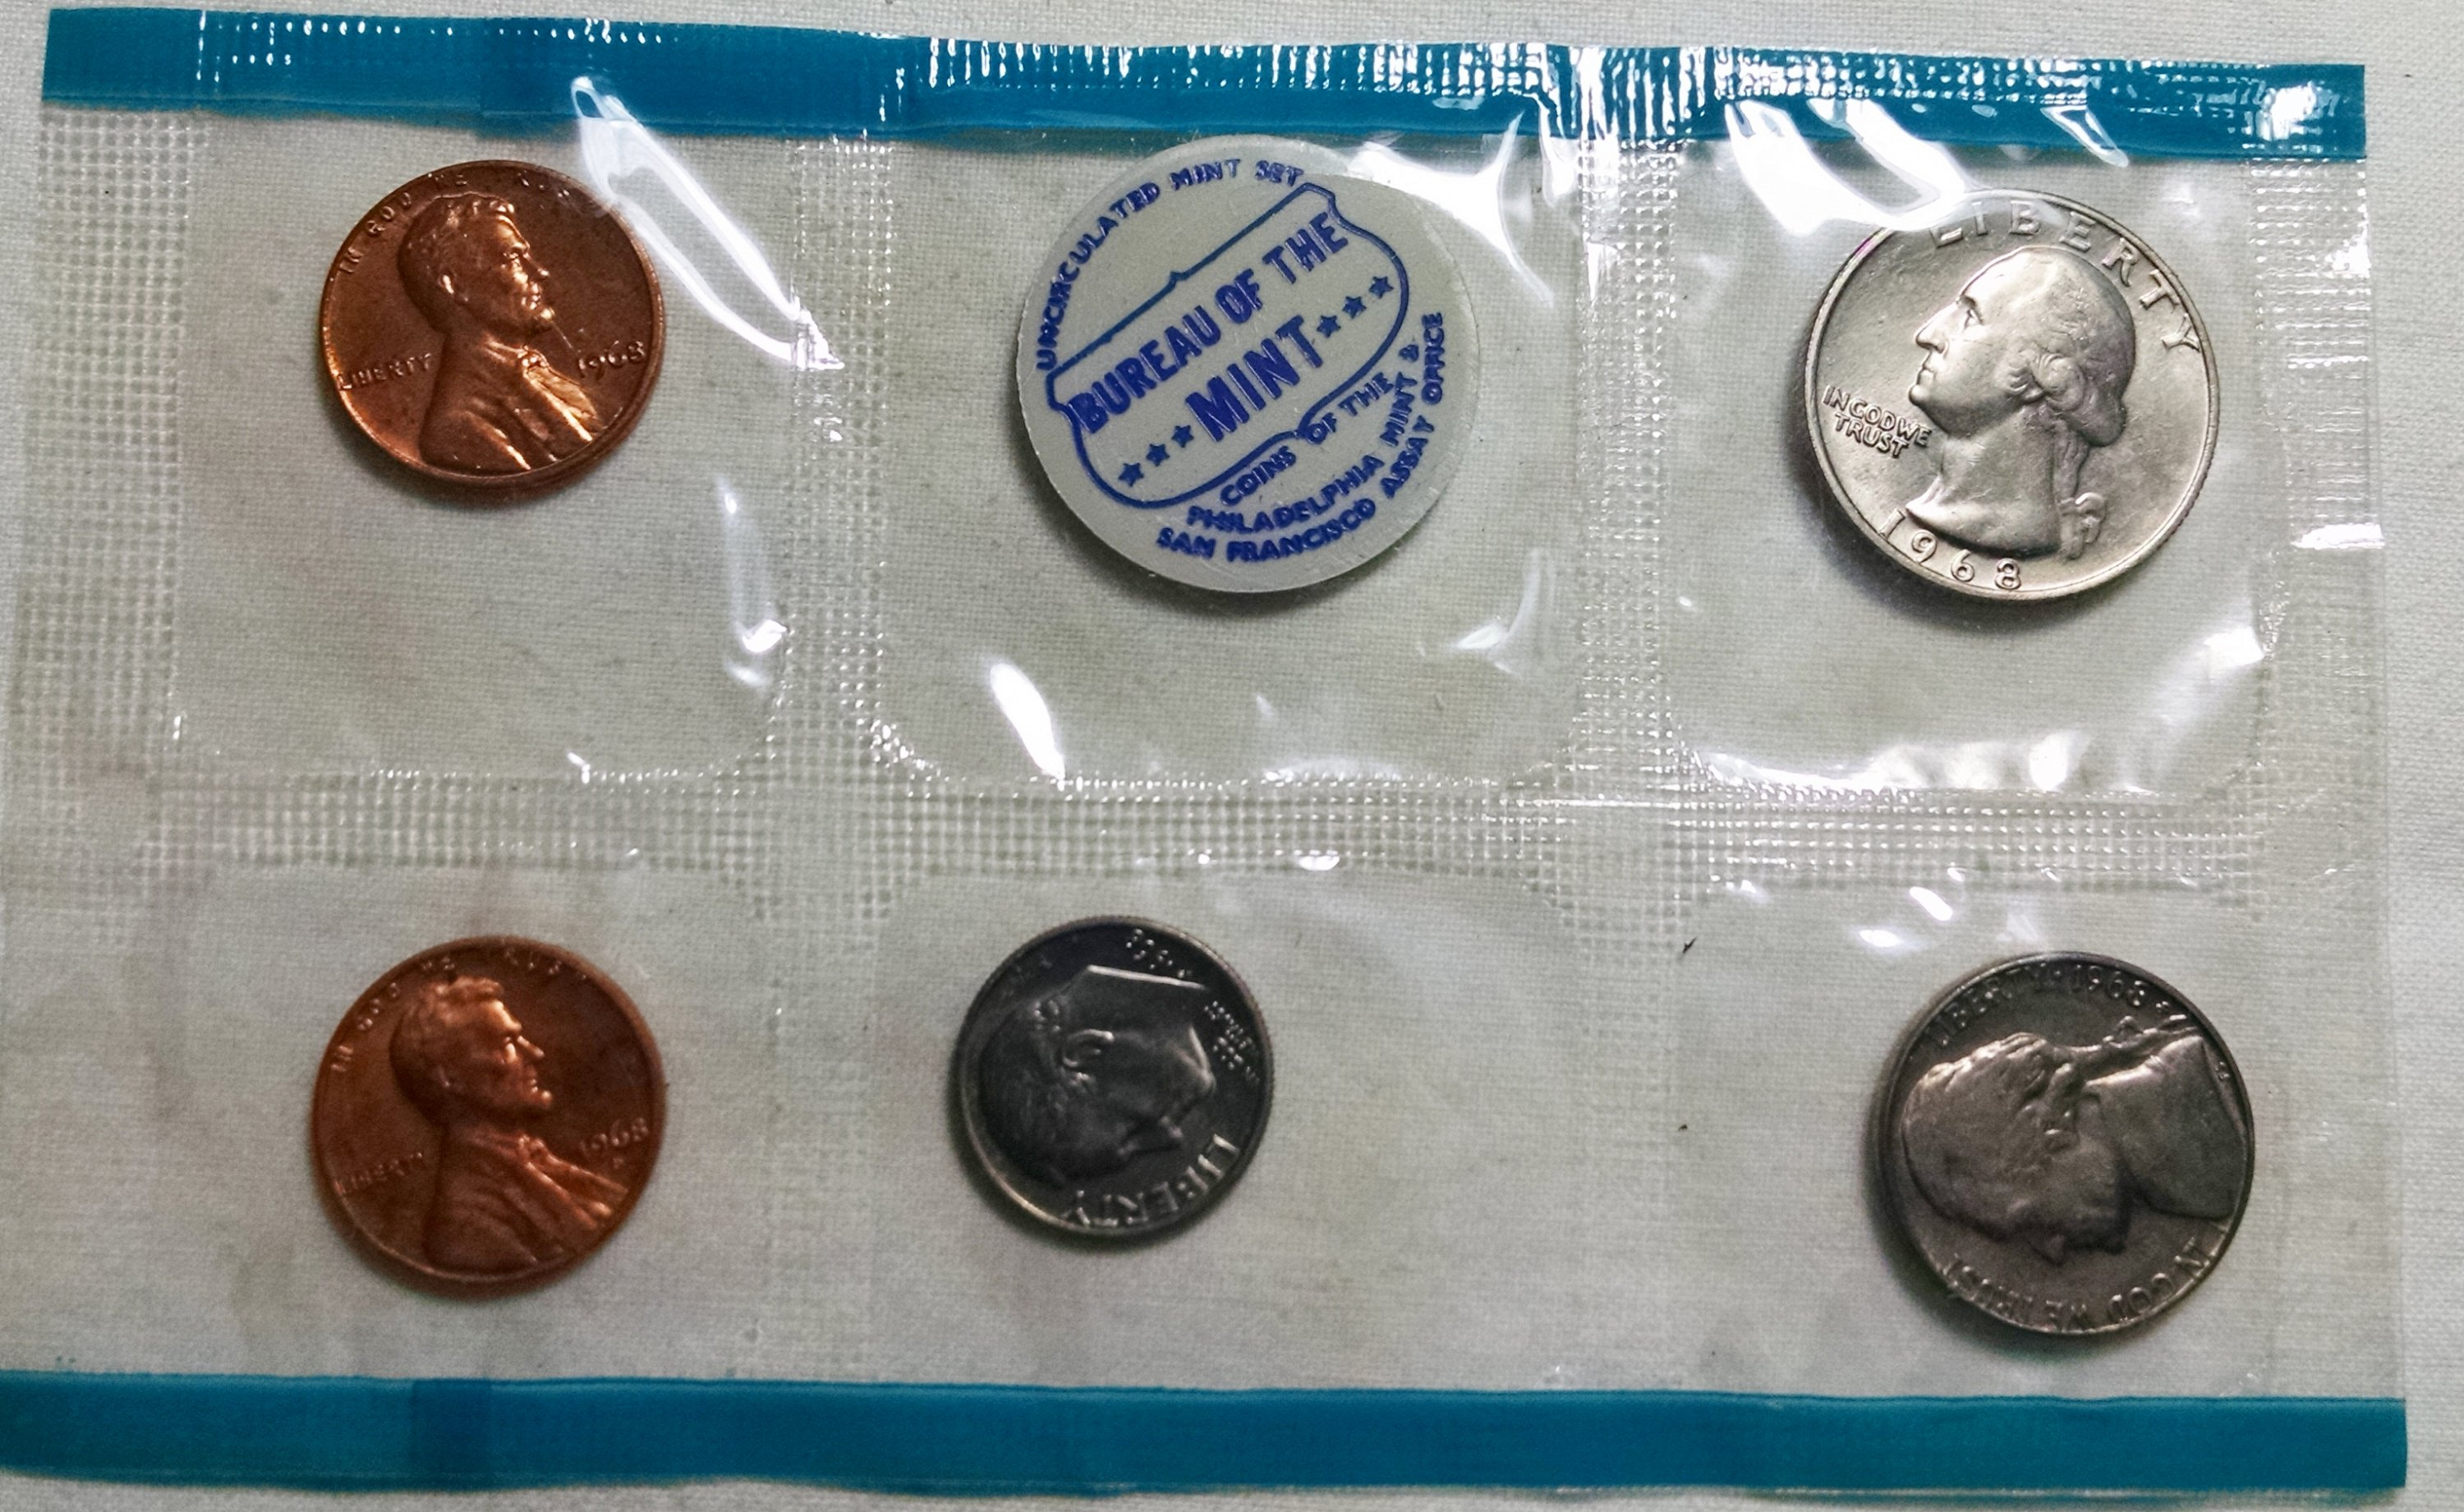 1968 P D S Uncirculated Mint sets in the original  Mint issued envelope